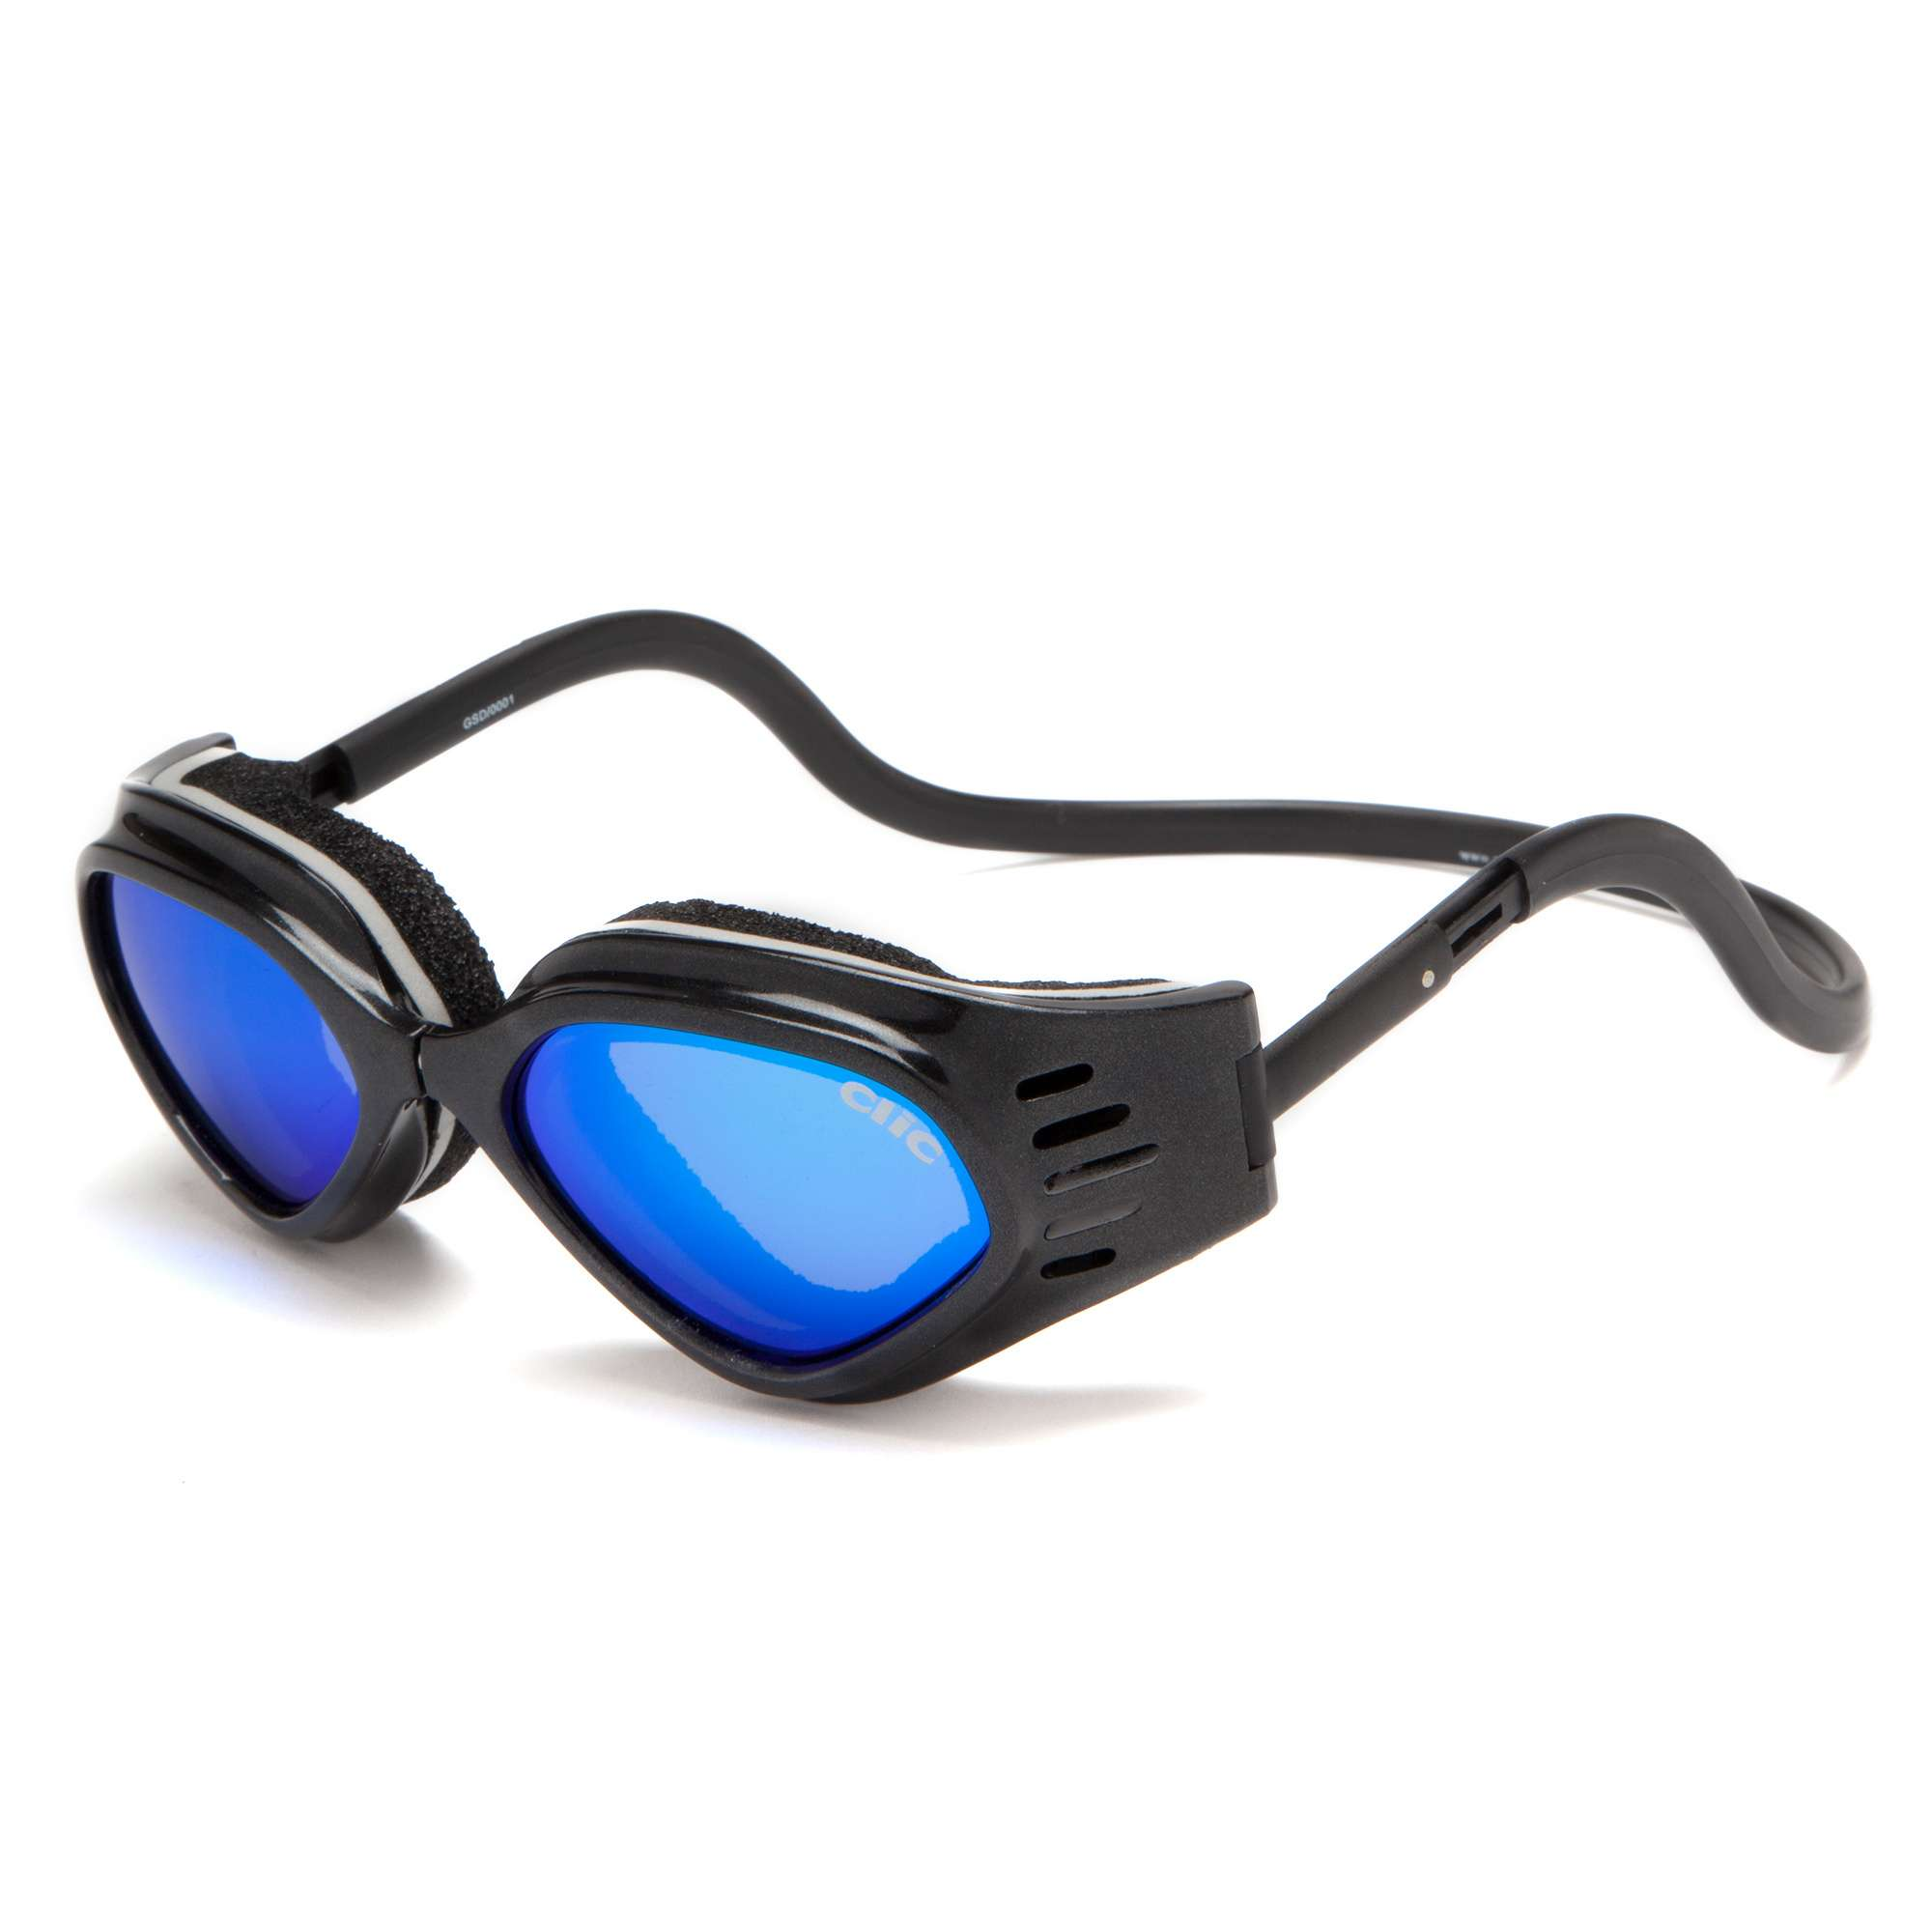 CLIC Extreme Goggles